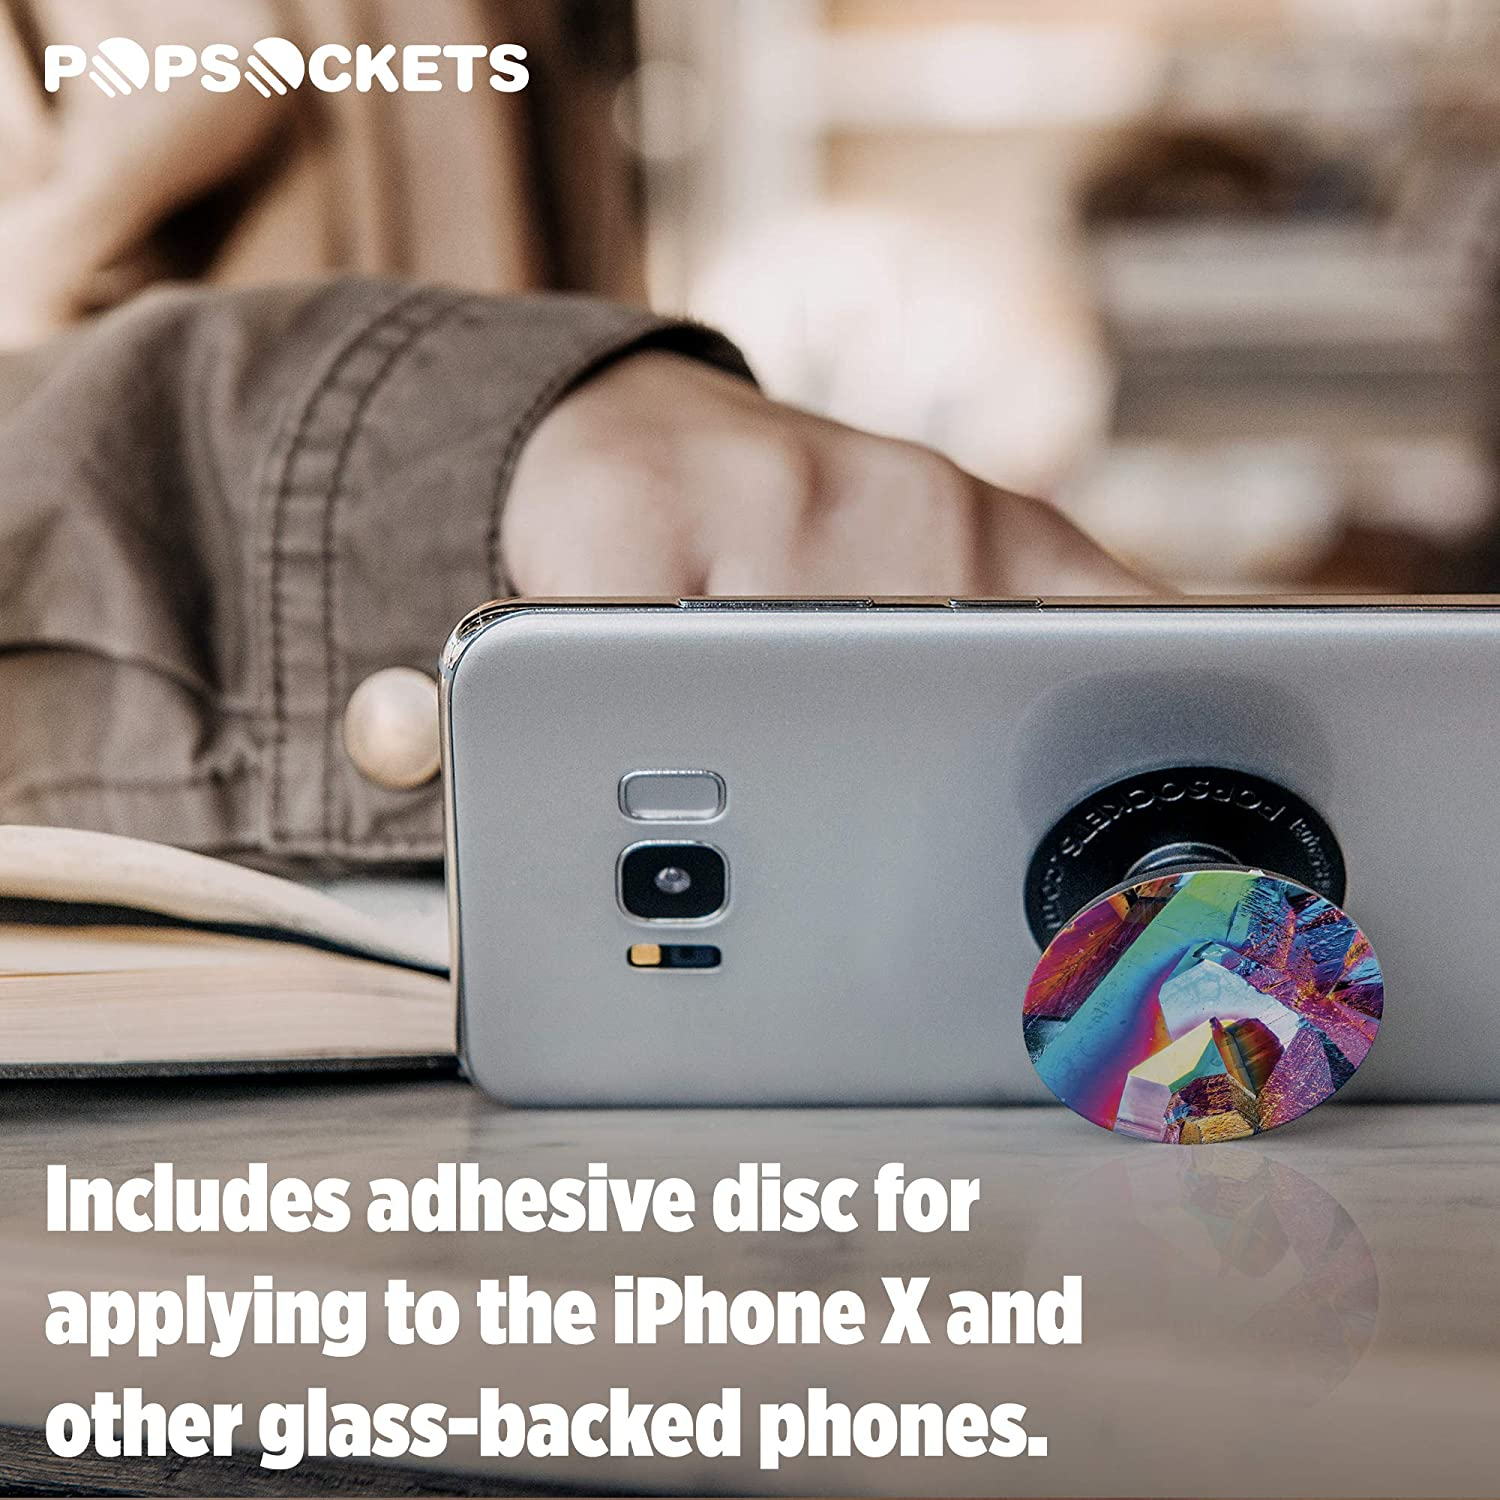 Collapsible Grip /& Stand for Phones and Tablets Malachite Gloss PopSockets